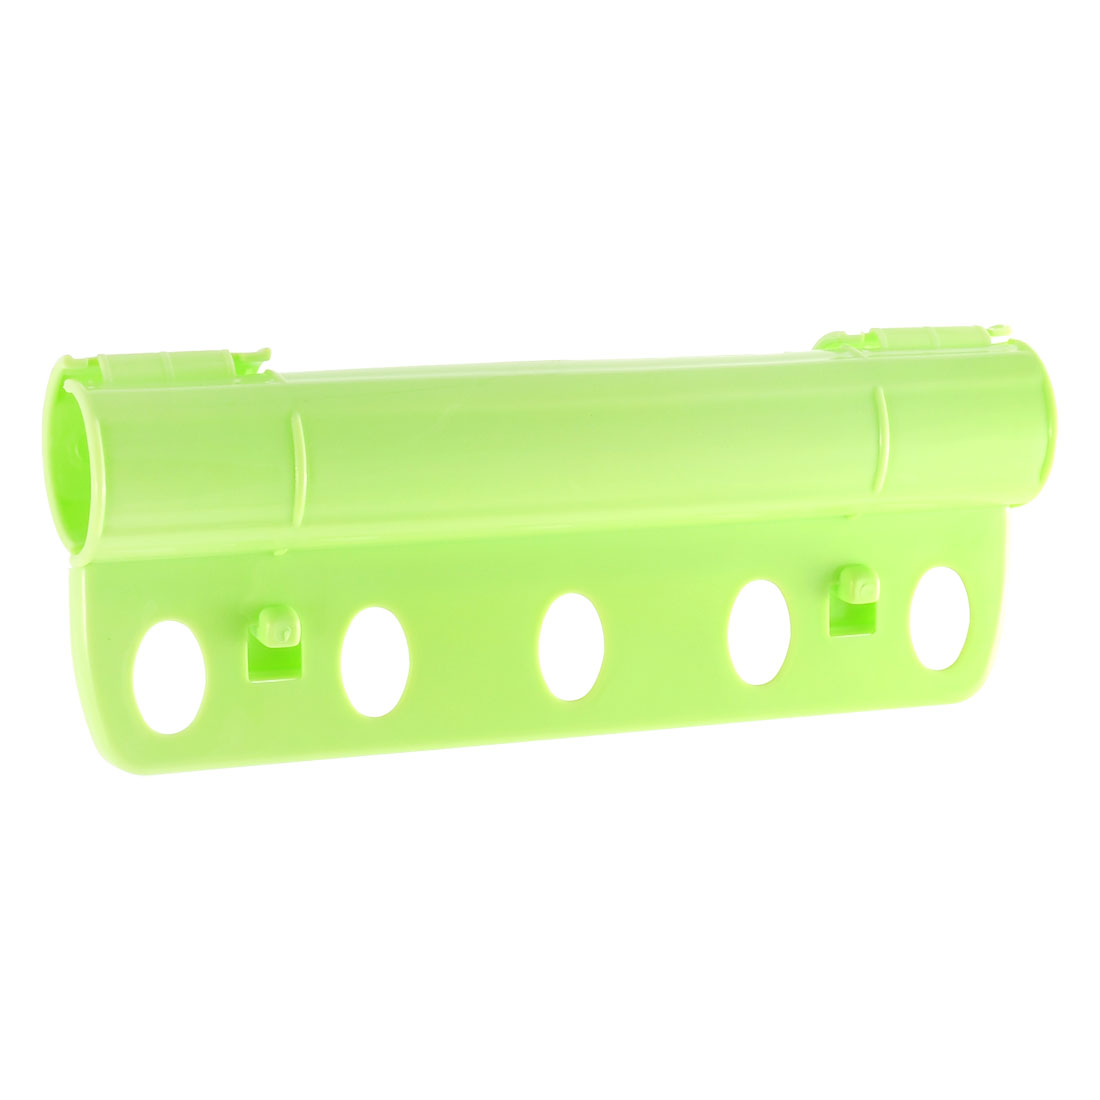 Creative 5 Holes Plastic Foldable Rack Fixed Windproof Clothes Hanger Lock Green